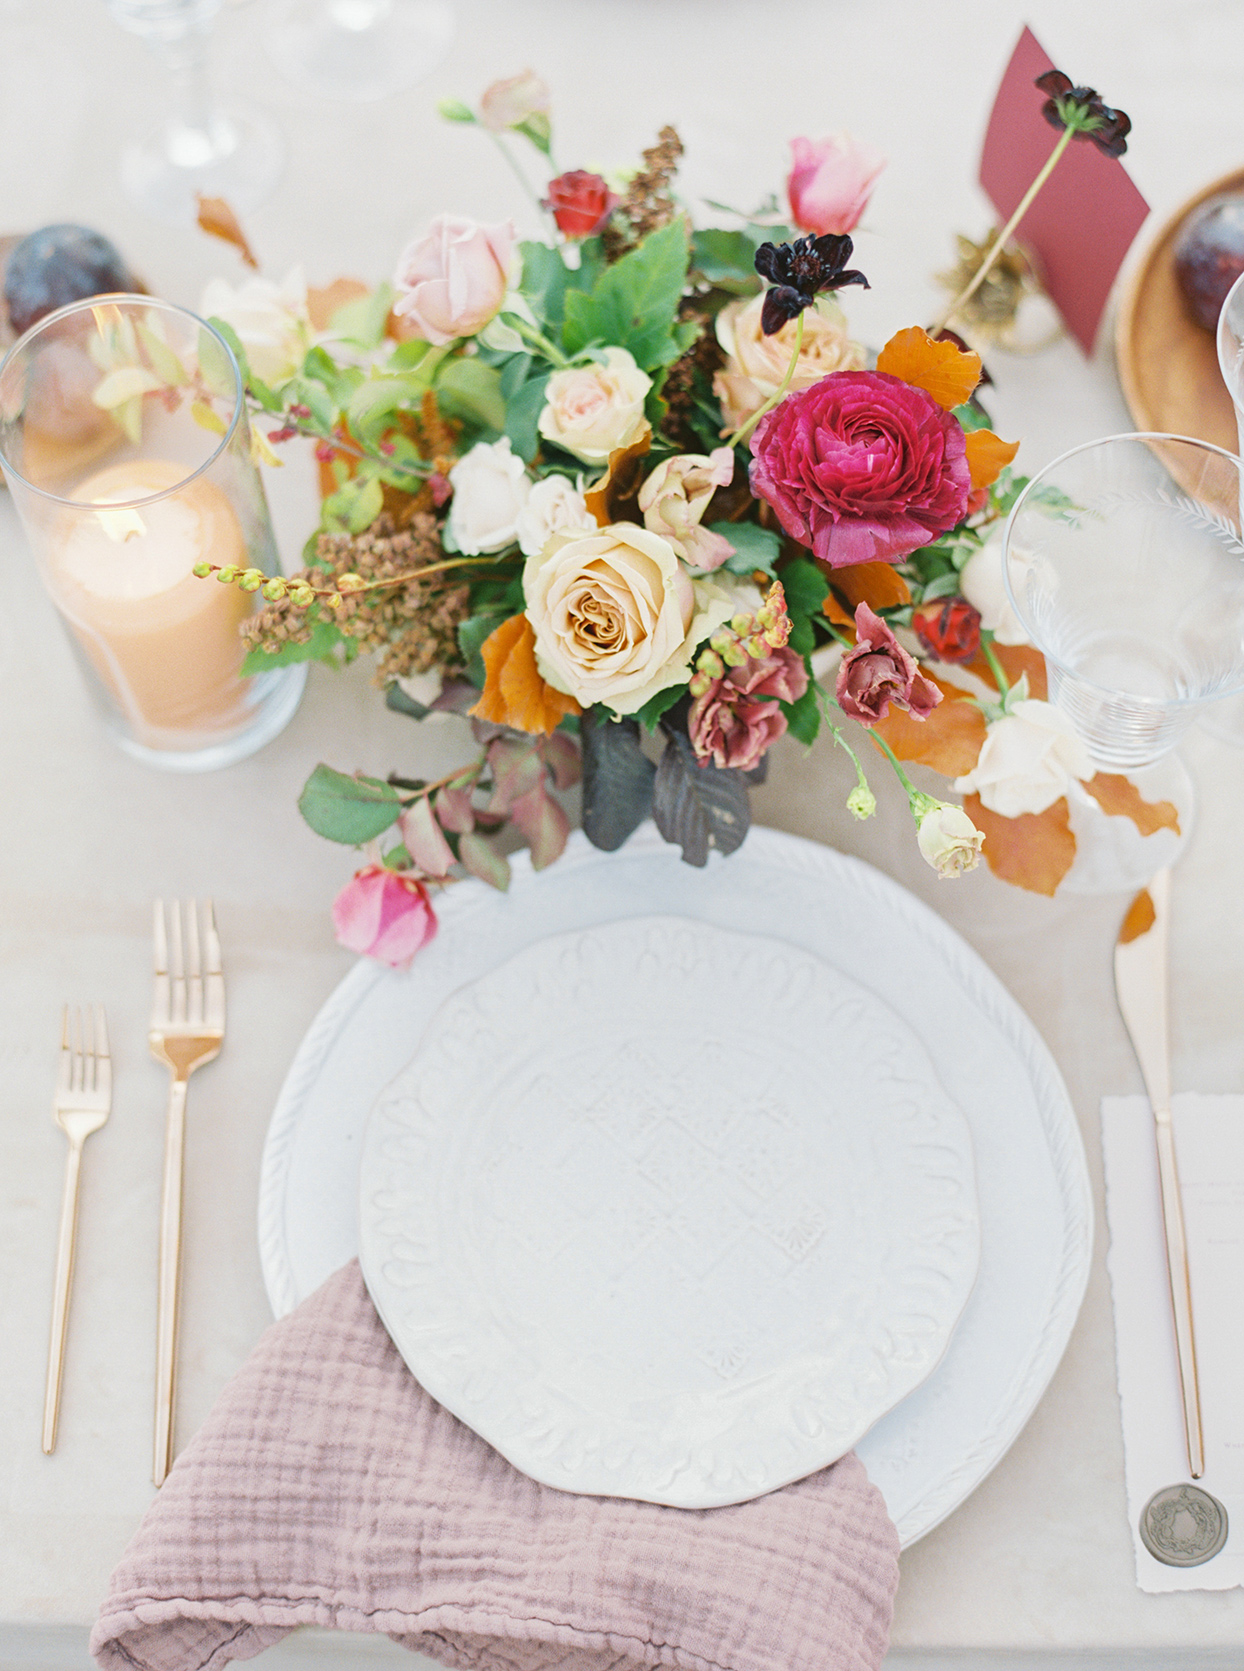 wedding reception white place setting with colorful fall floral bouquet